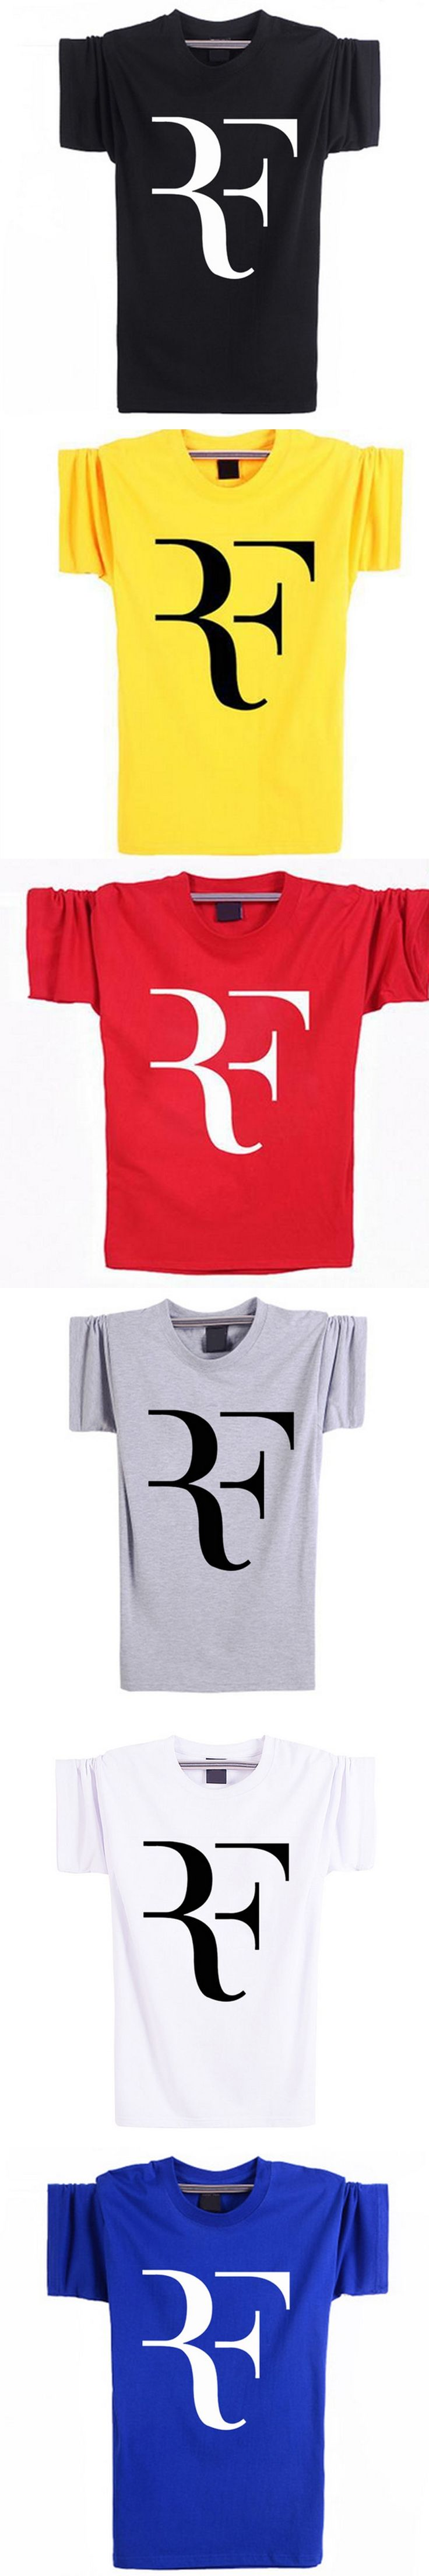 Roger Federer T Shirt Men Fashion T-Shirts Star RF T Shirts Cotton Short Sleeve Tee Shirt Homme Brand Clothing